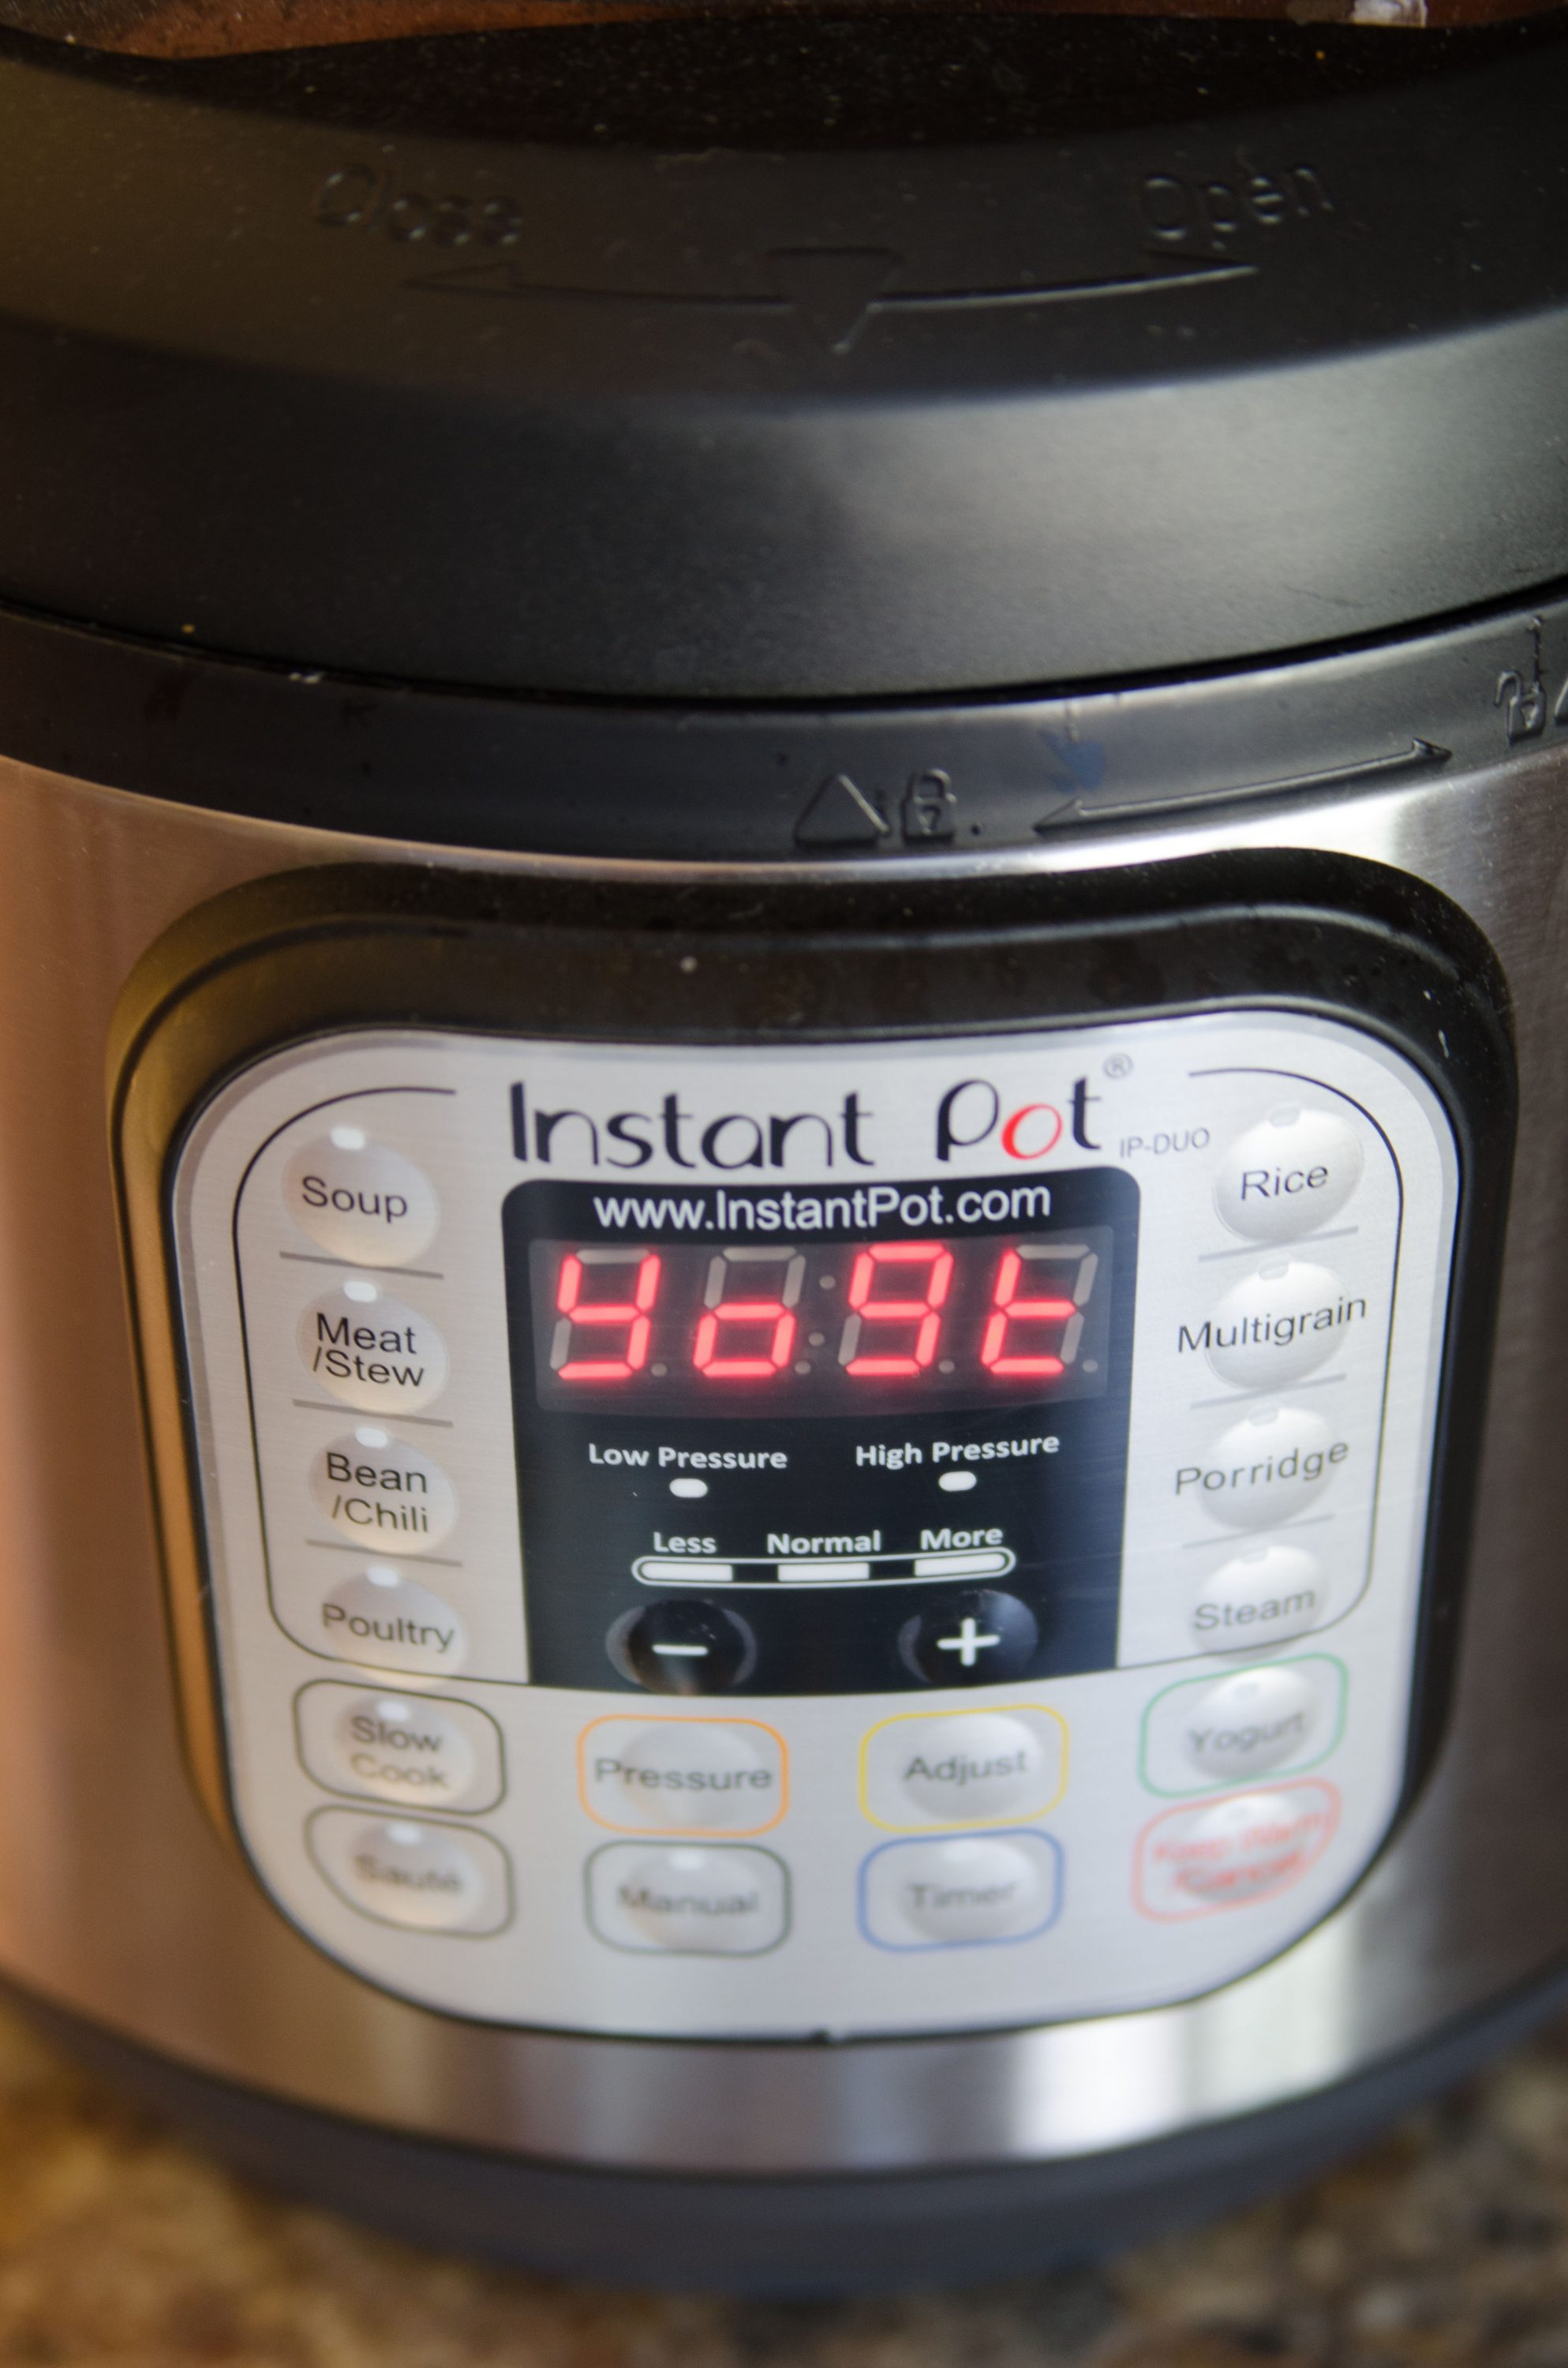 Instant Pot yogurt recipe